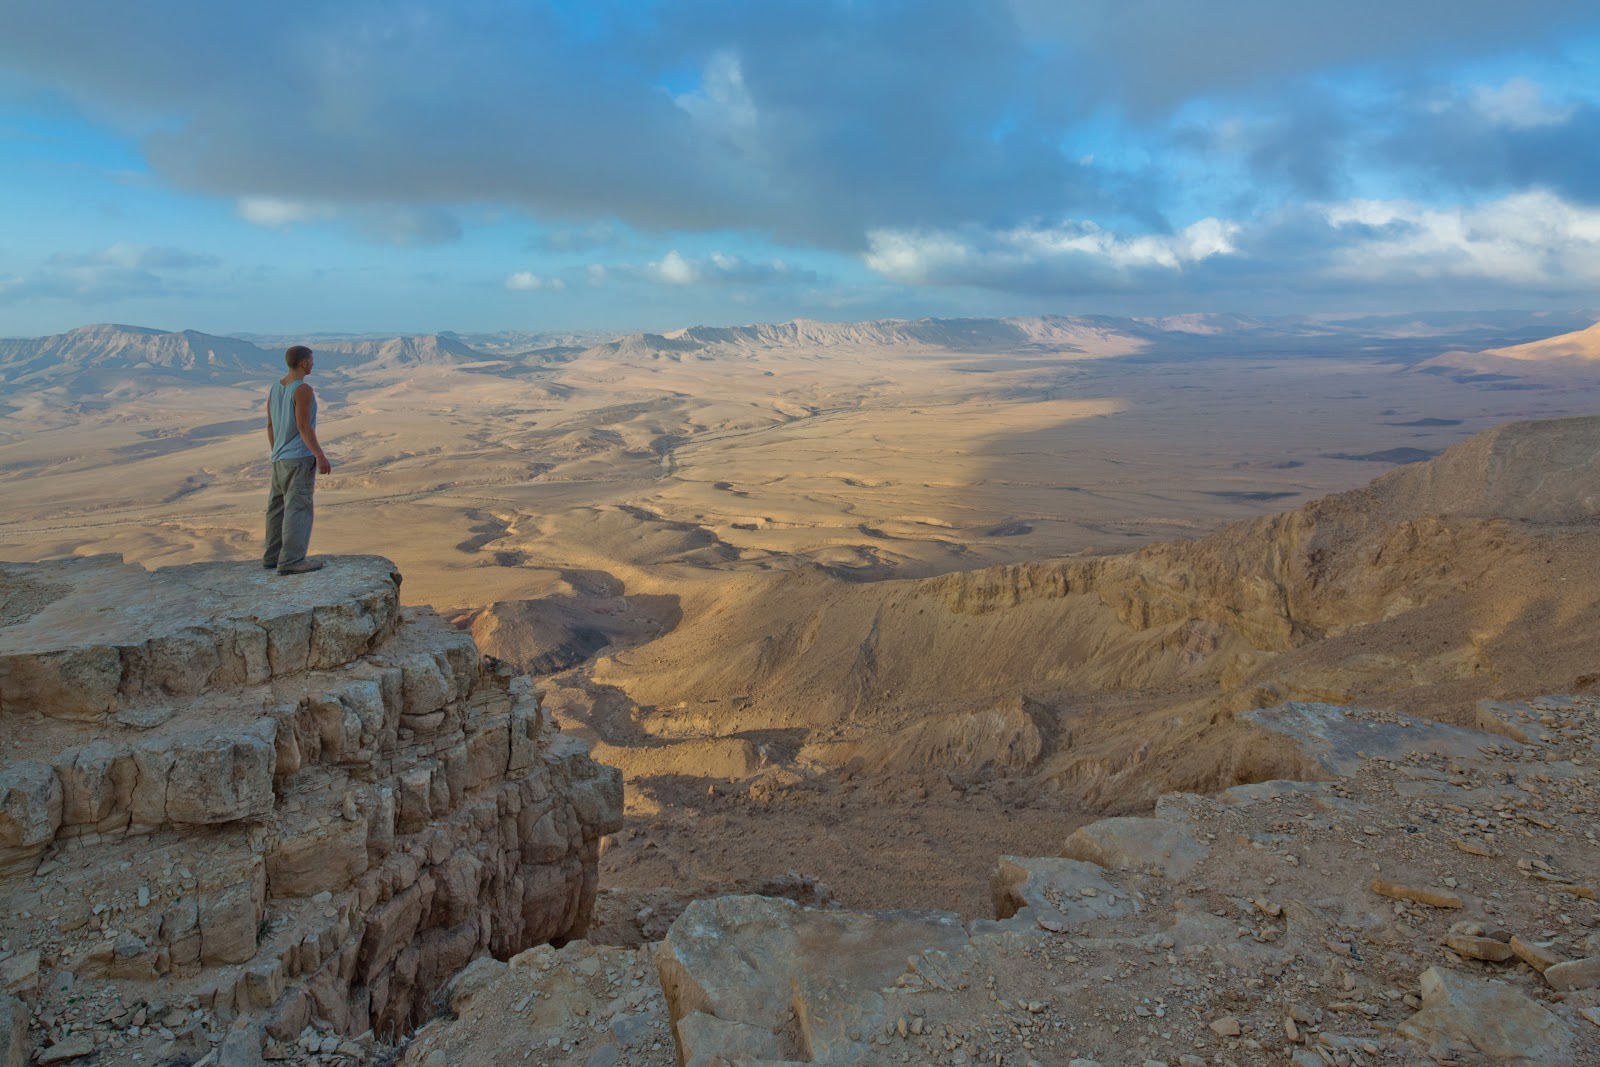 Trekking and Climbing Adventure in the Deserts of Israel